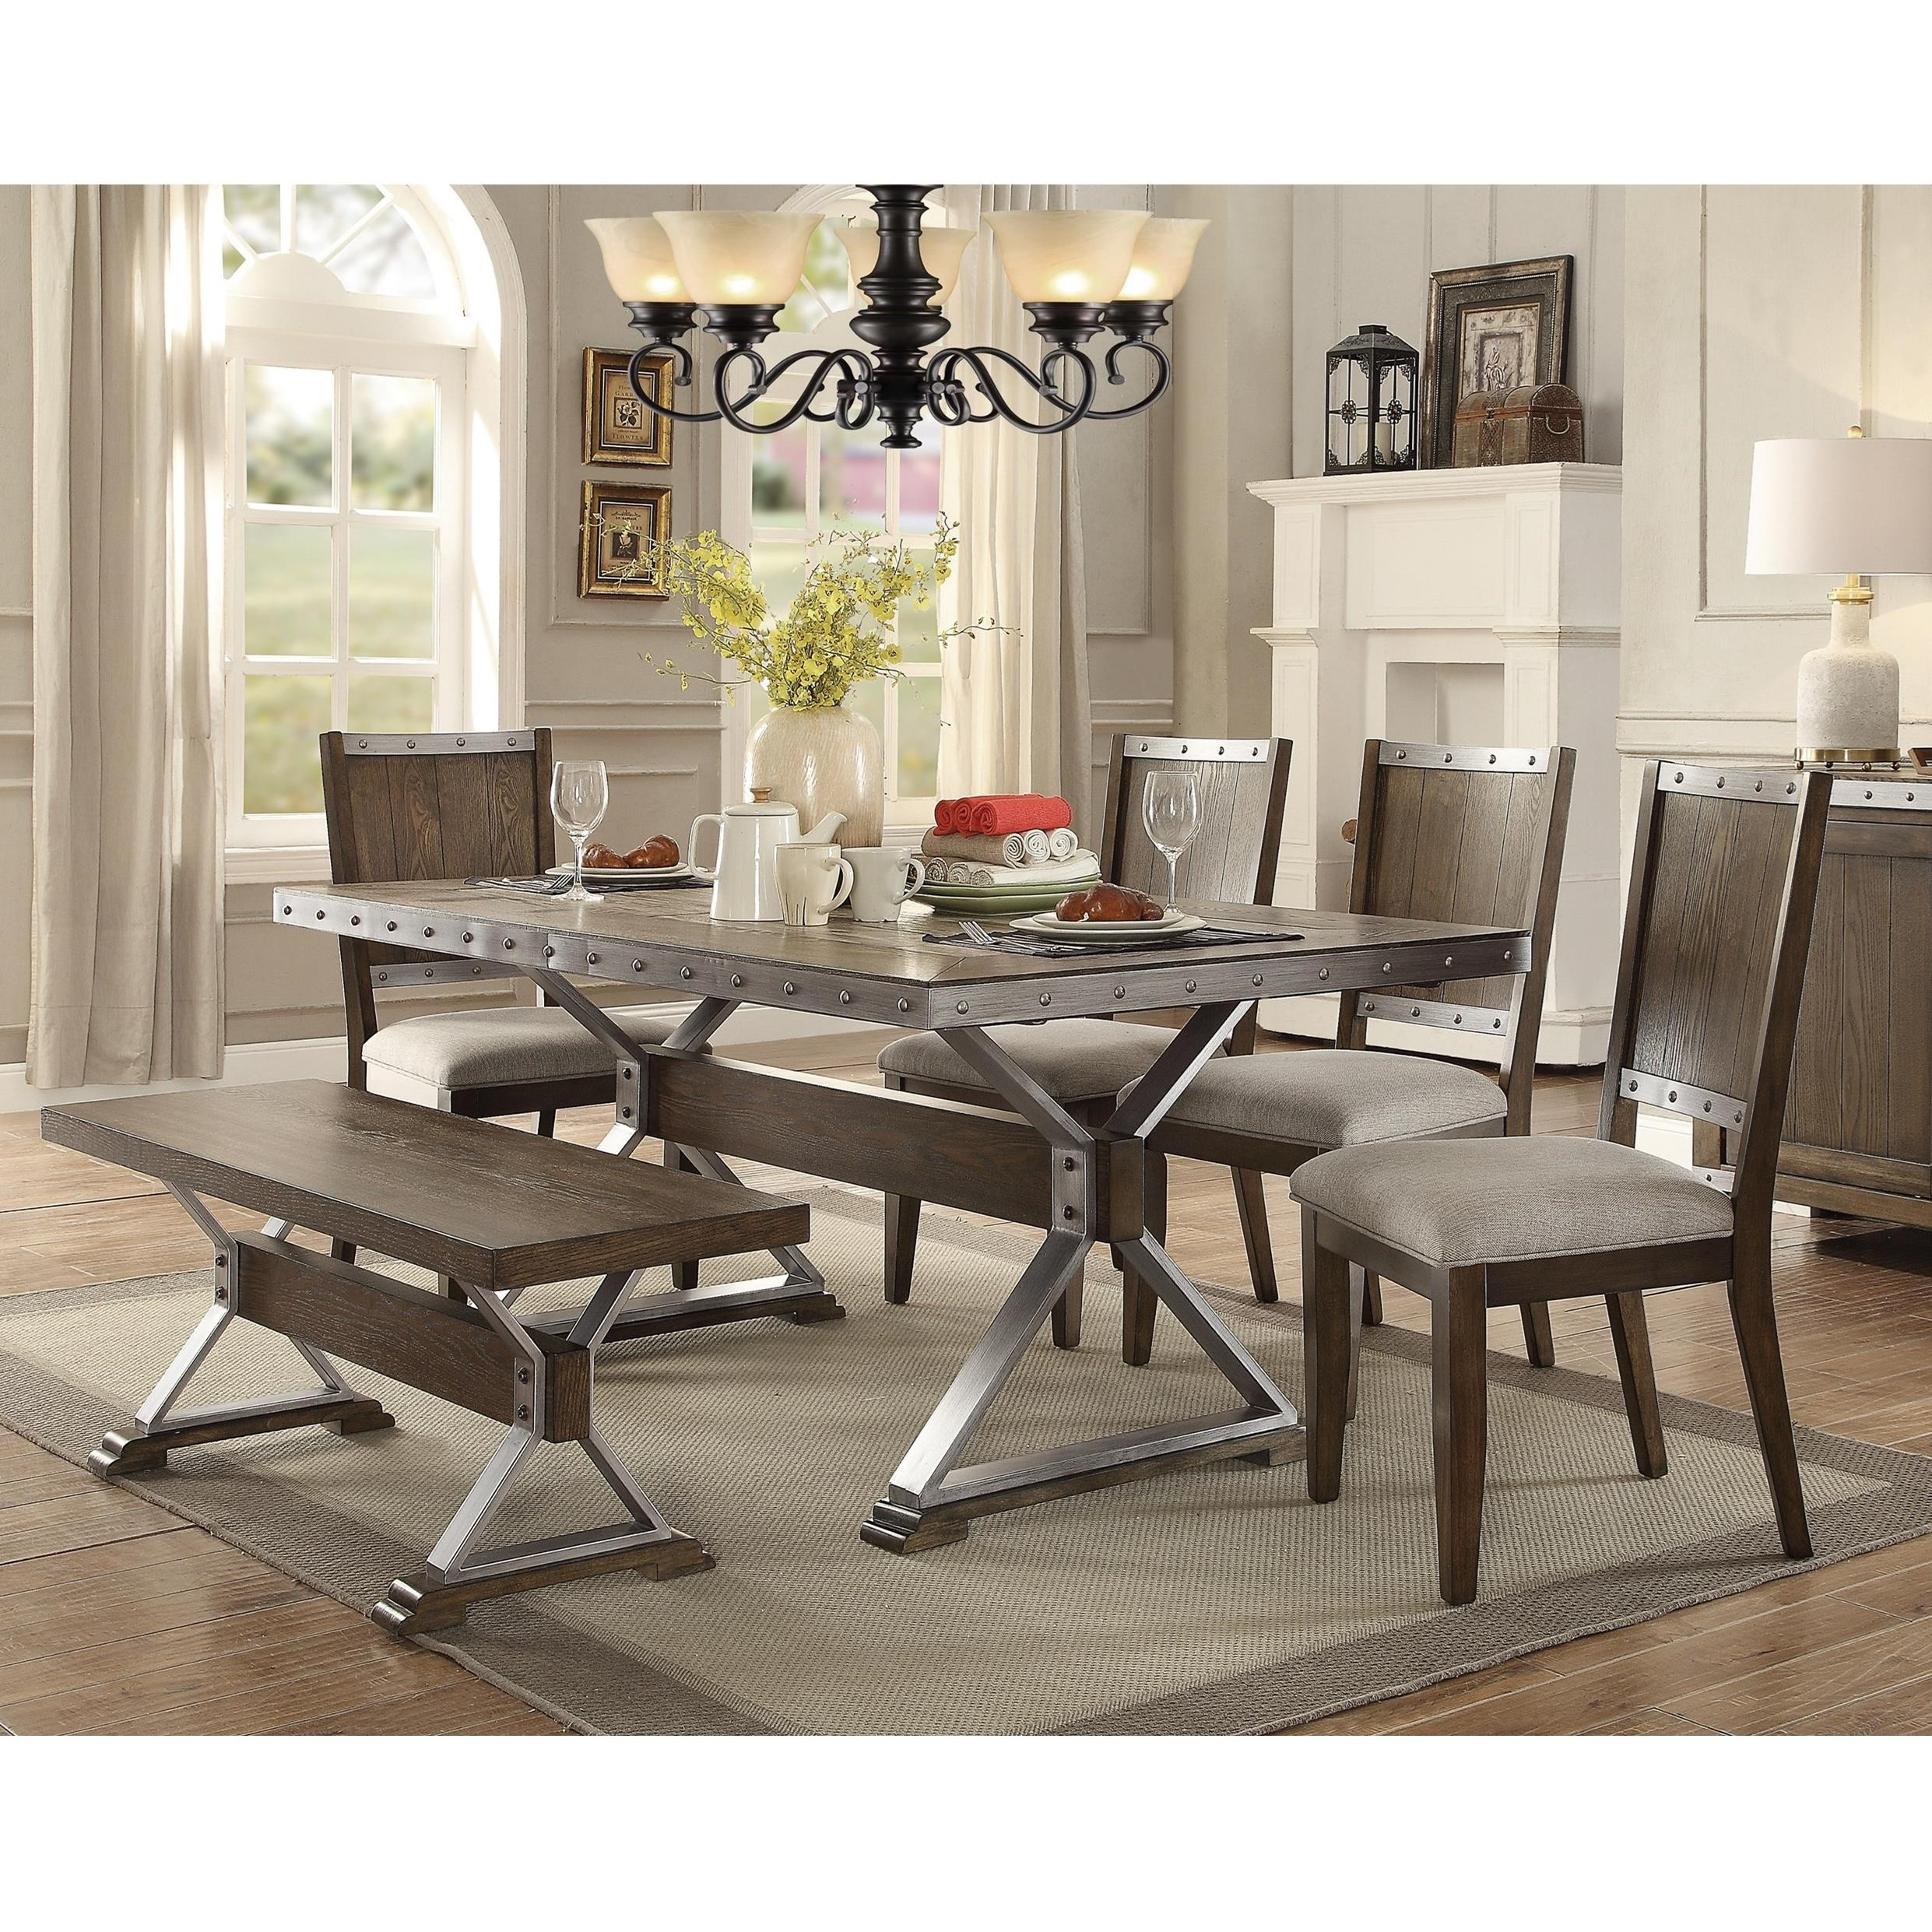 Coaster Beckett Table And Chair Set   Item Number: 107011+4x107012+107013